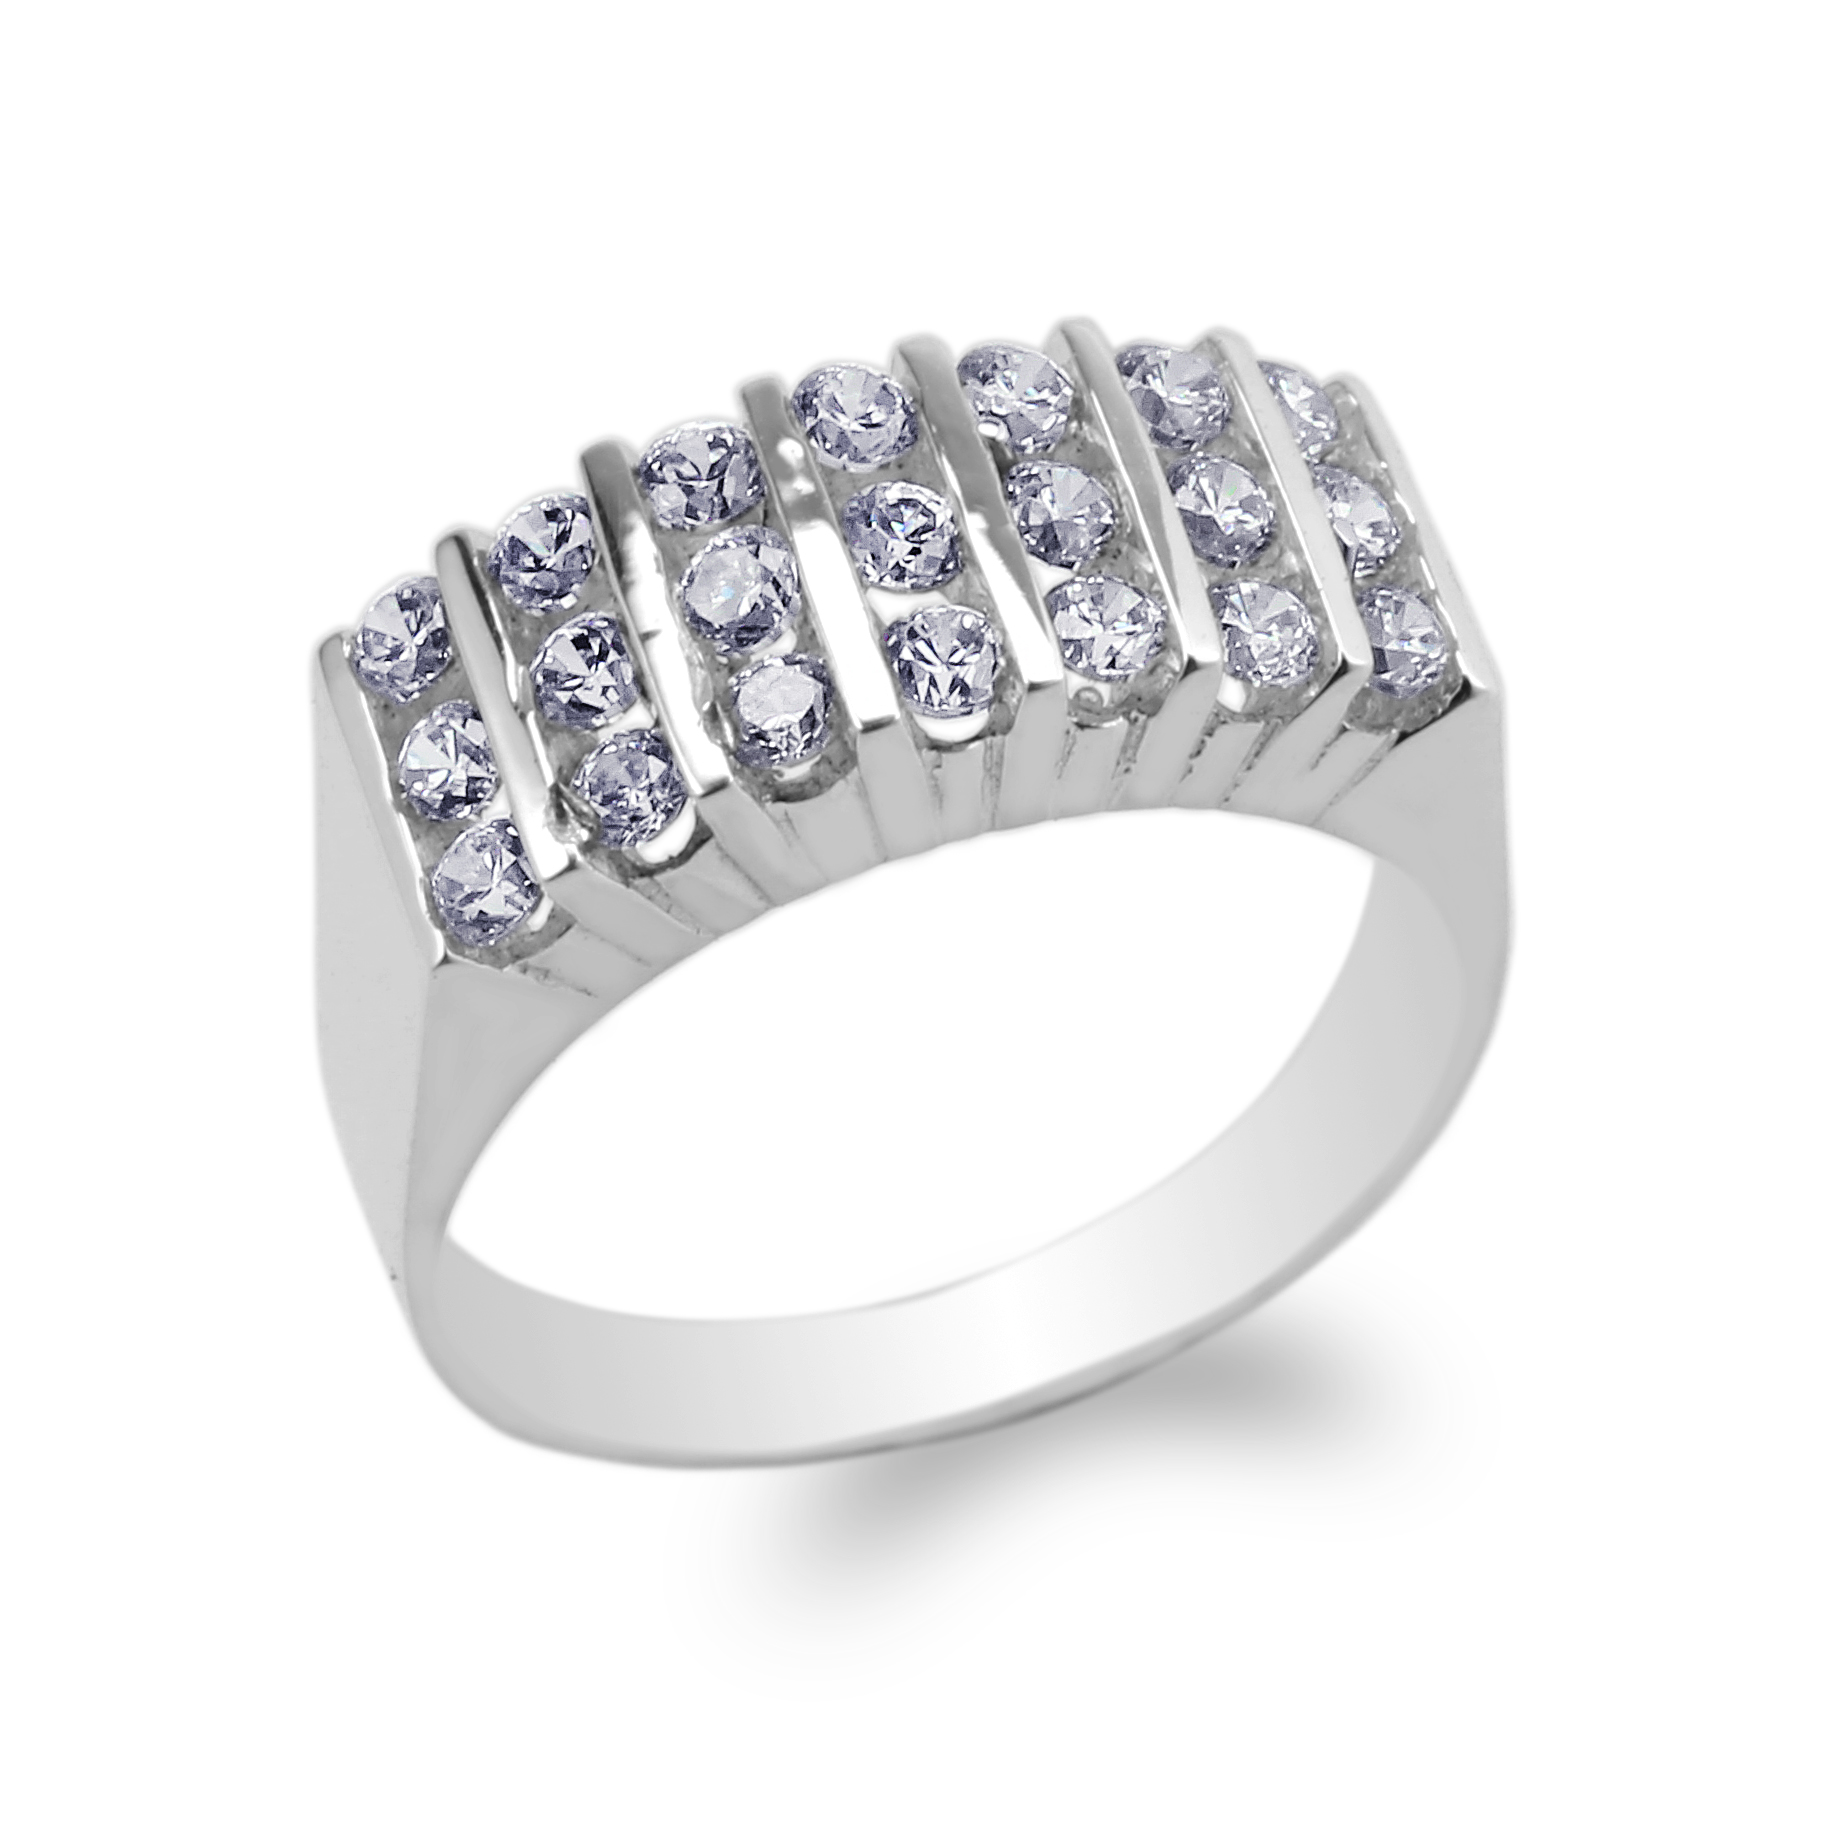 JamesJenny Sterling Silver 925 Round CZ Channel Beautiful Band Ring Size 4-10